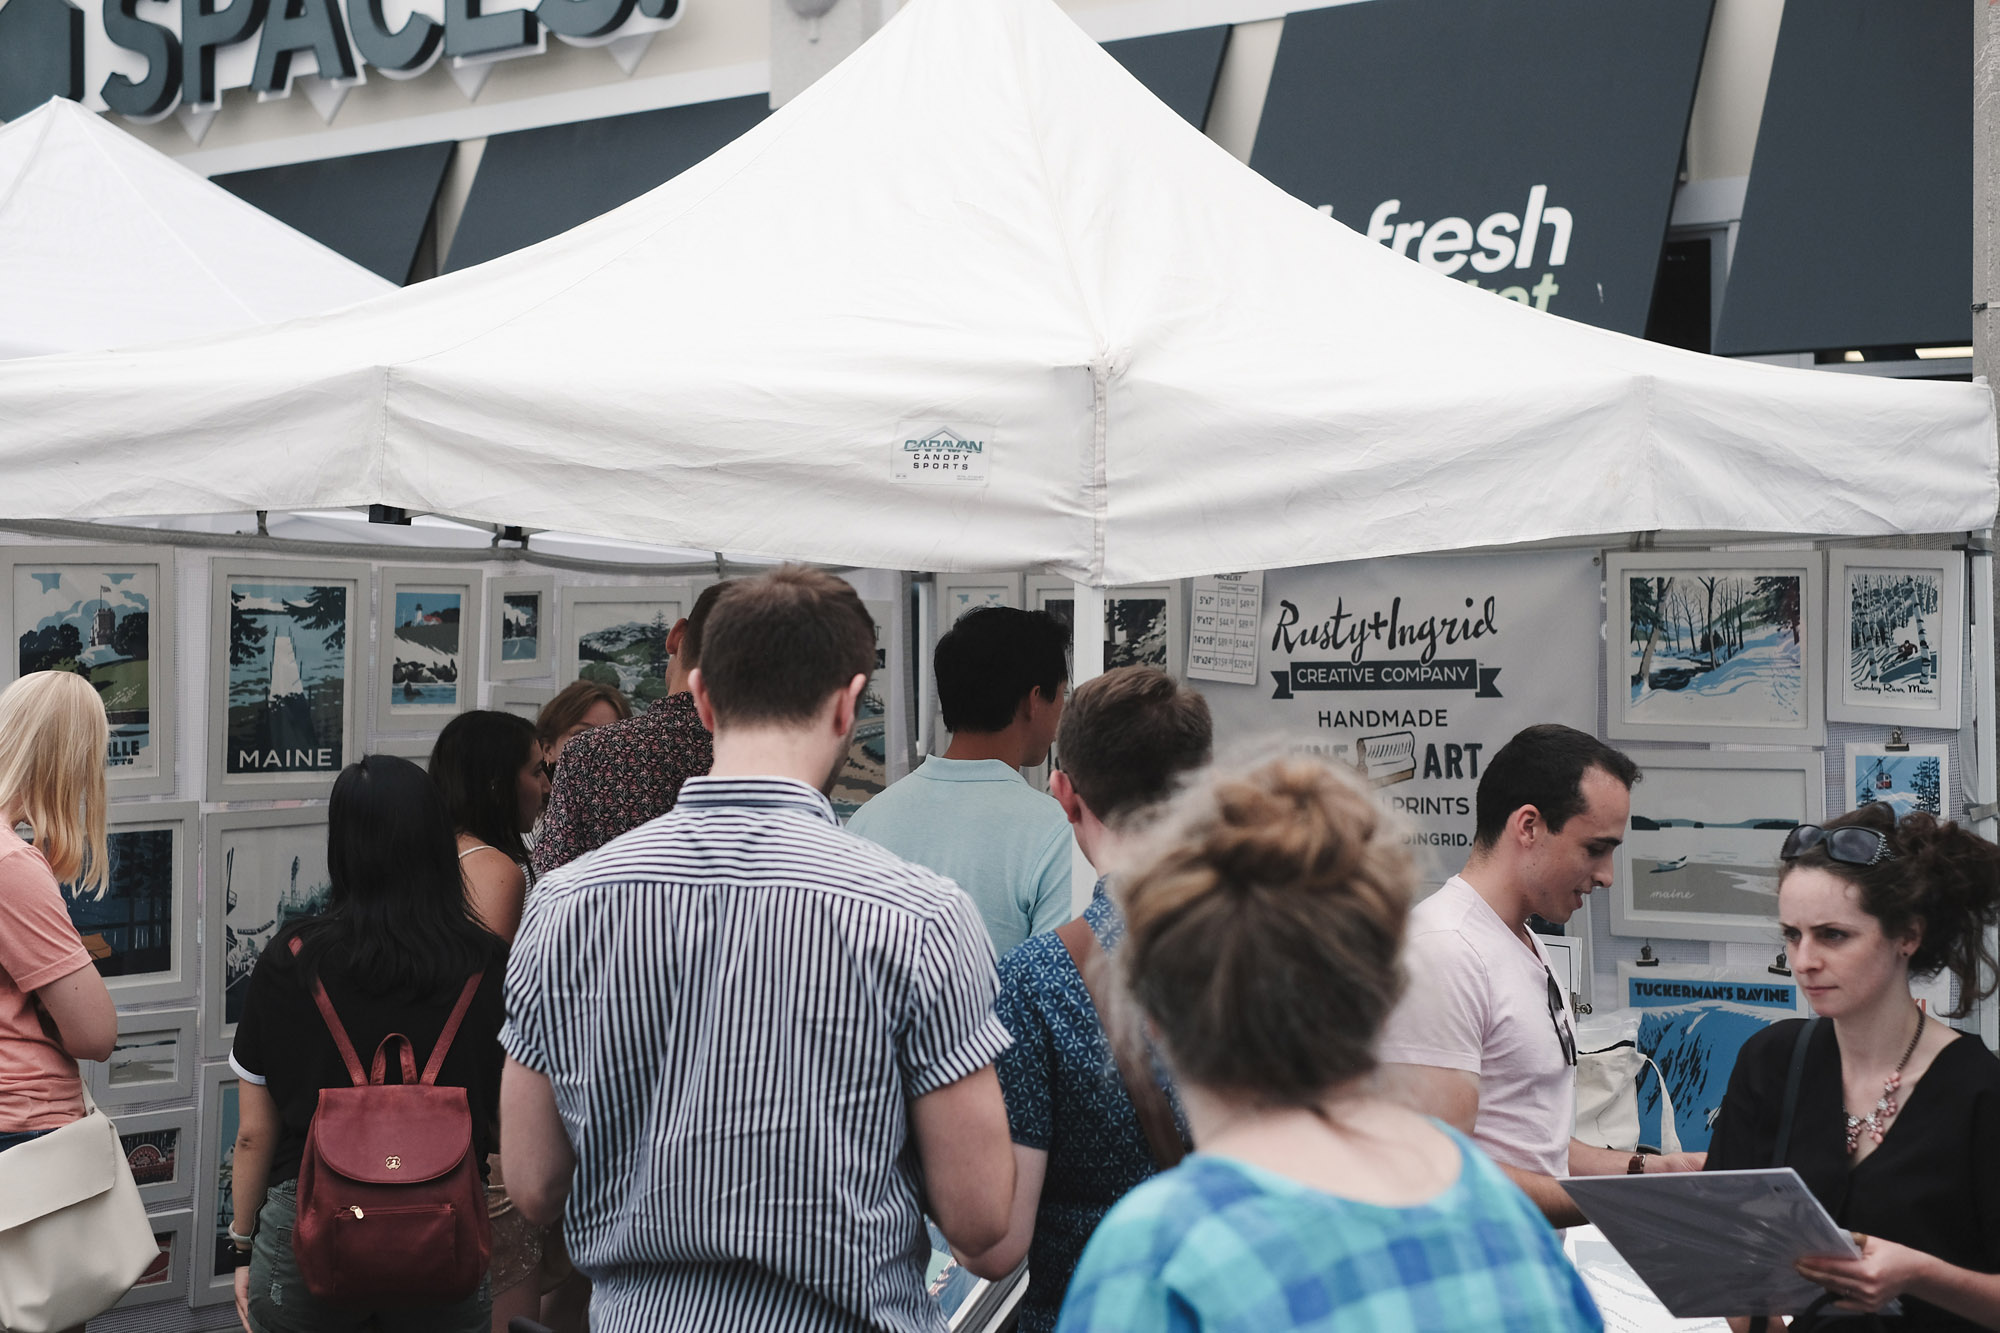 Our booth was slammed all day long.  Rusty and Ingrid Creative Company